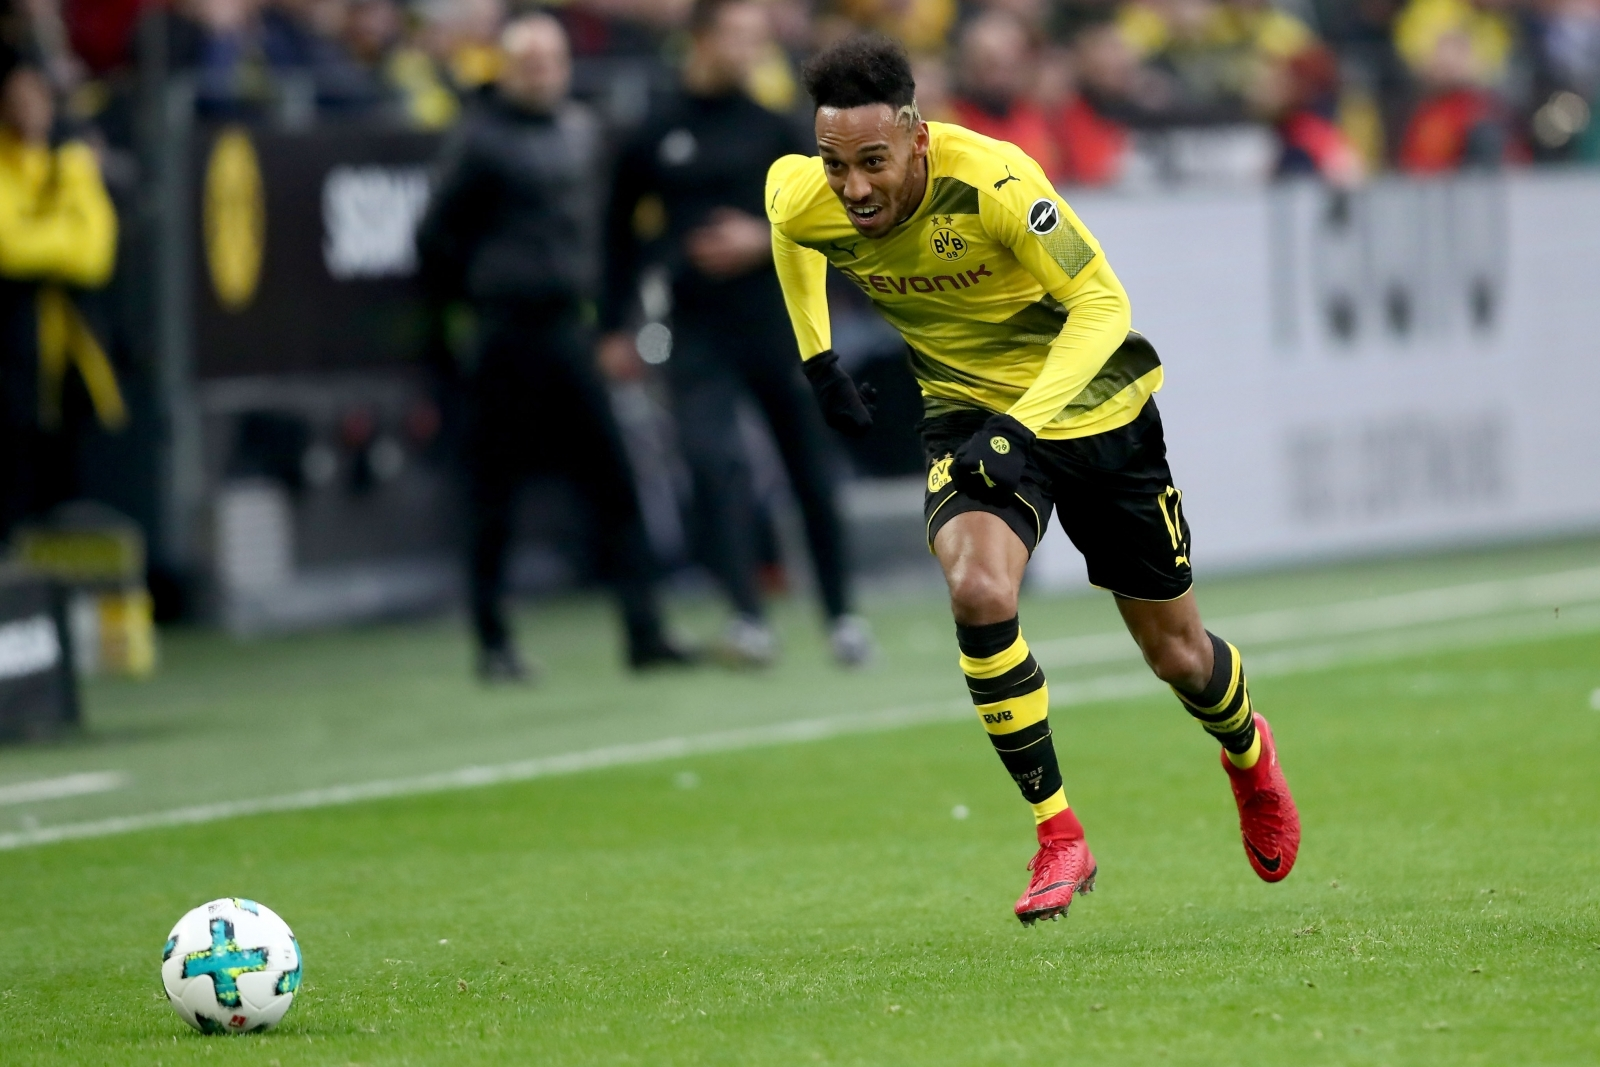 Arsenal transfer news: Ray Parlour urges Gunners to complete Pierre-Emerick Aubameyang signing